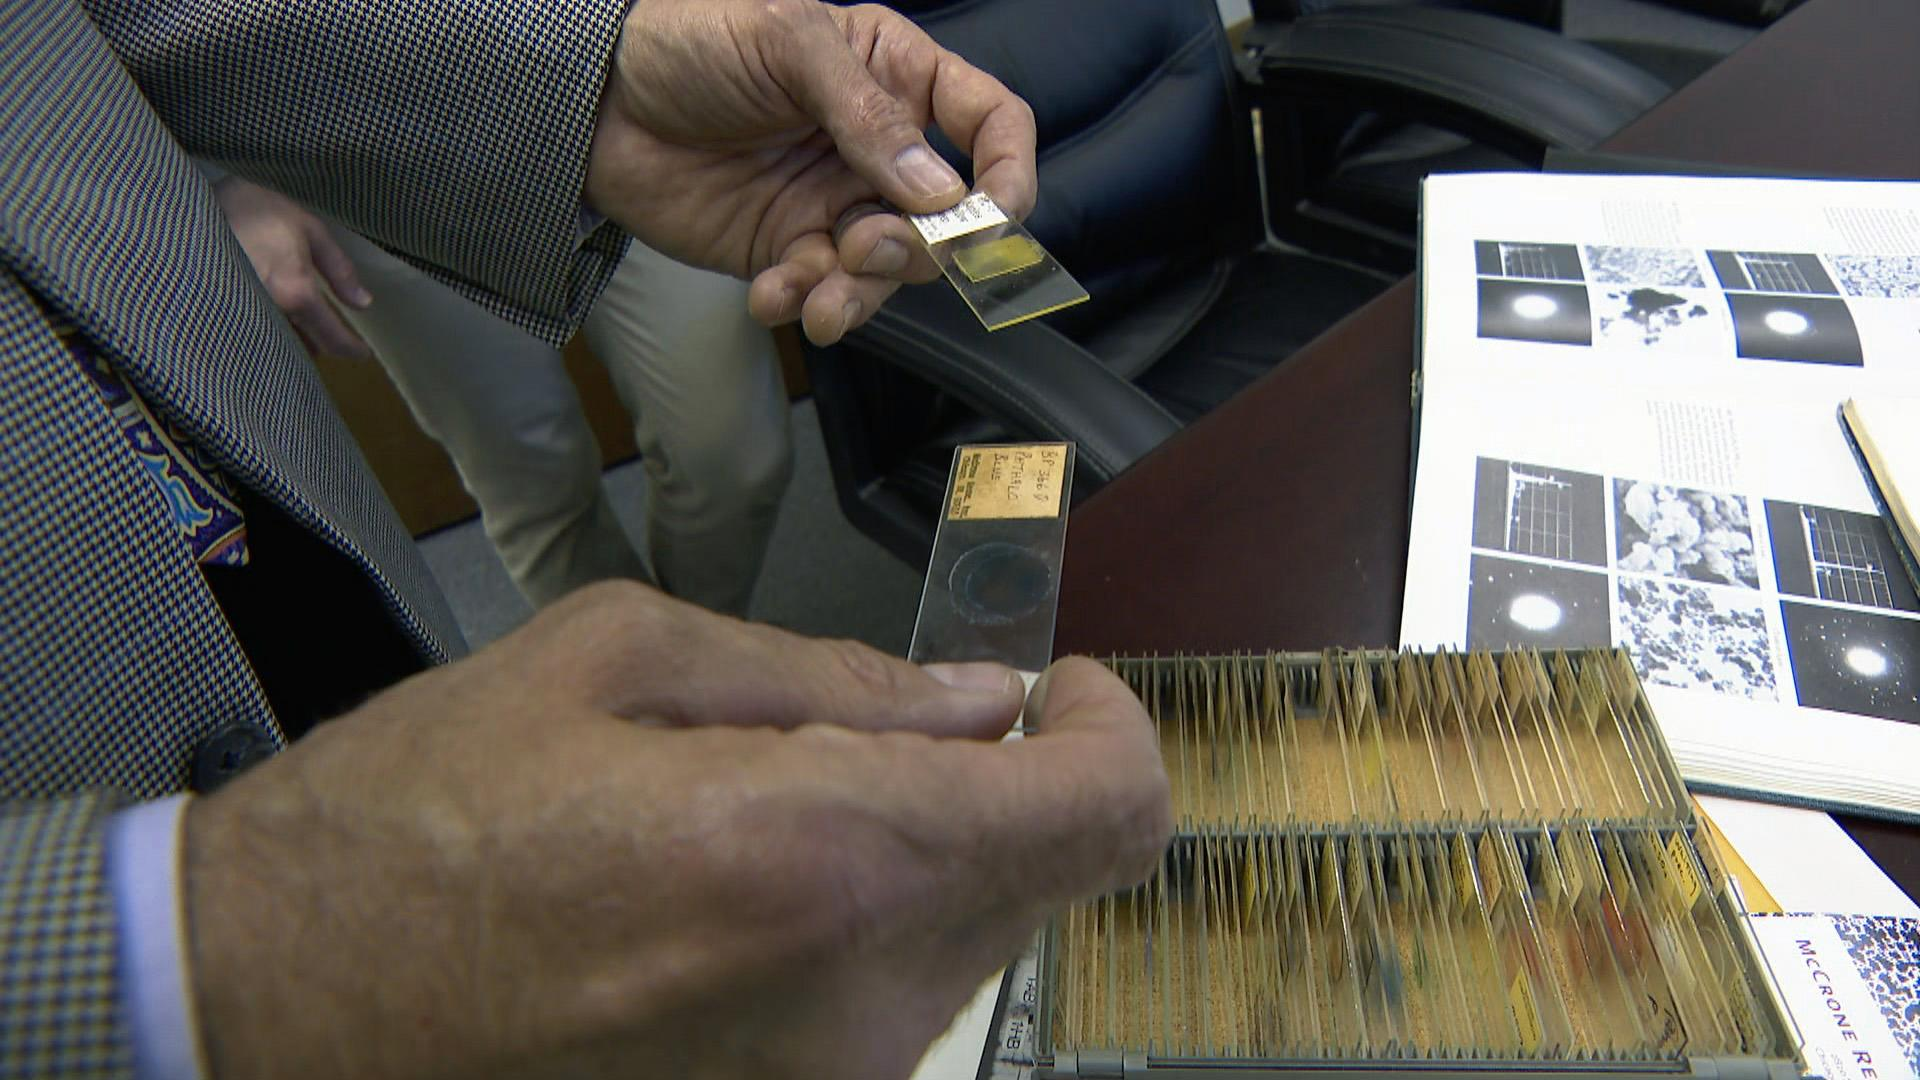 Gary Laughlin handles specimens at theMcCrone Research Institutein Bronzeville, founded in 1960 by Walter McCrone. (WTTW News)